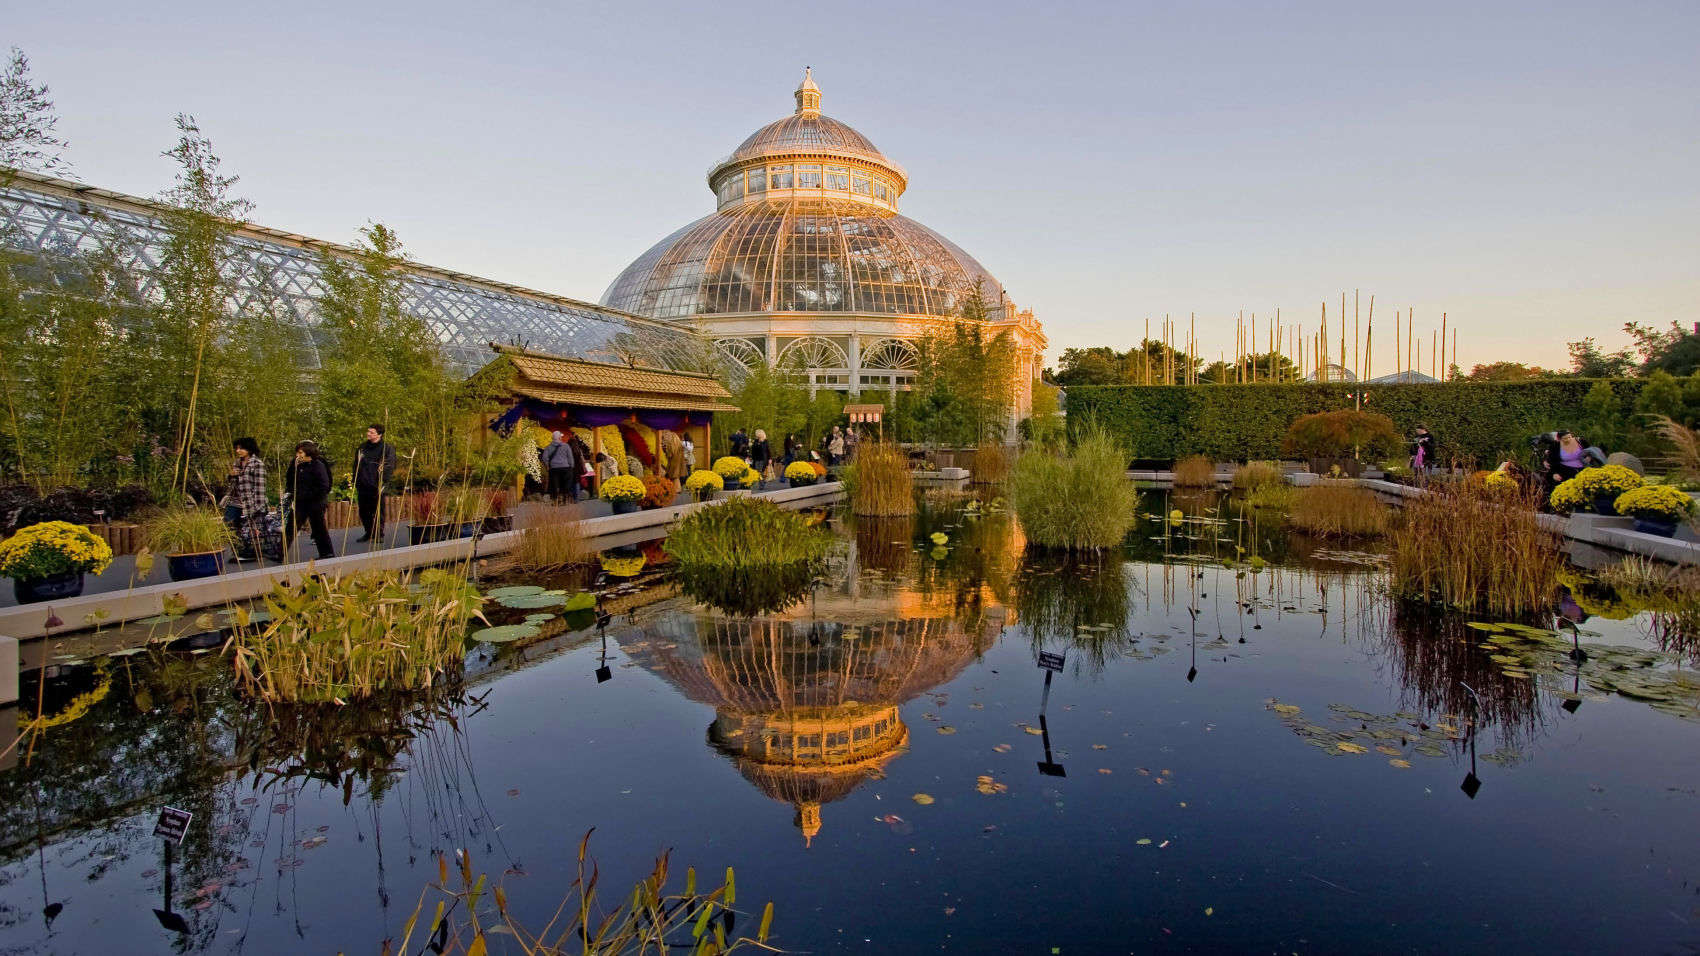 15 Closest Hotels to New York Botanical Gardens in Bronx | Hotels.com